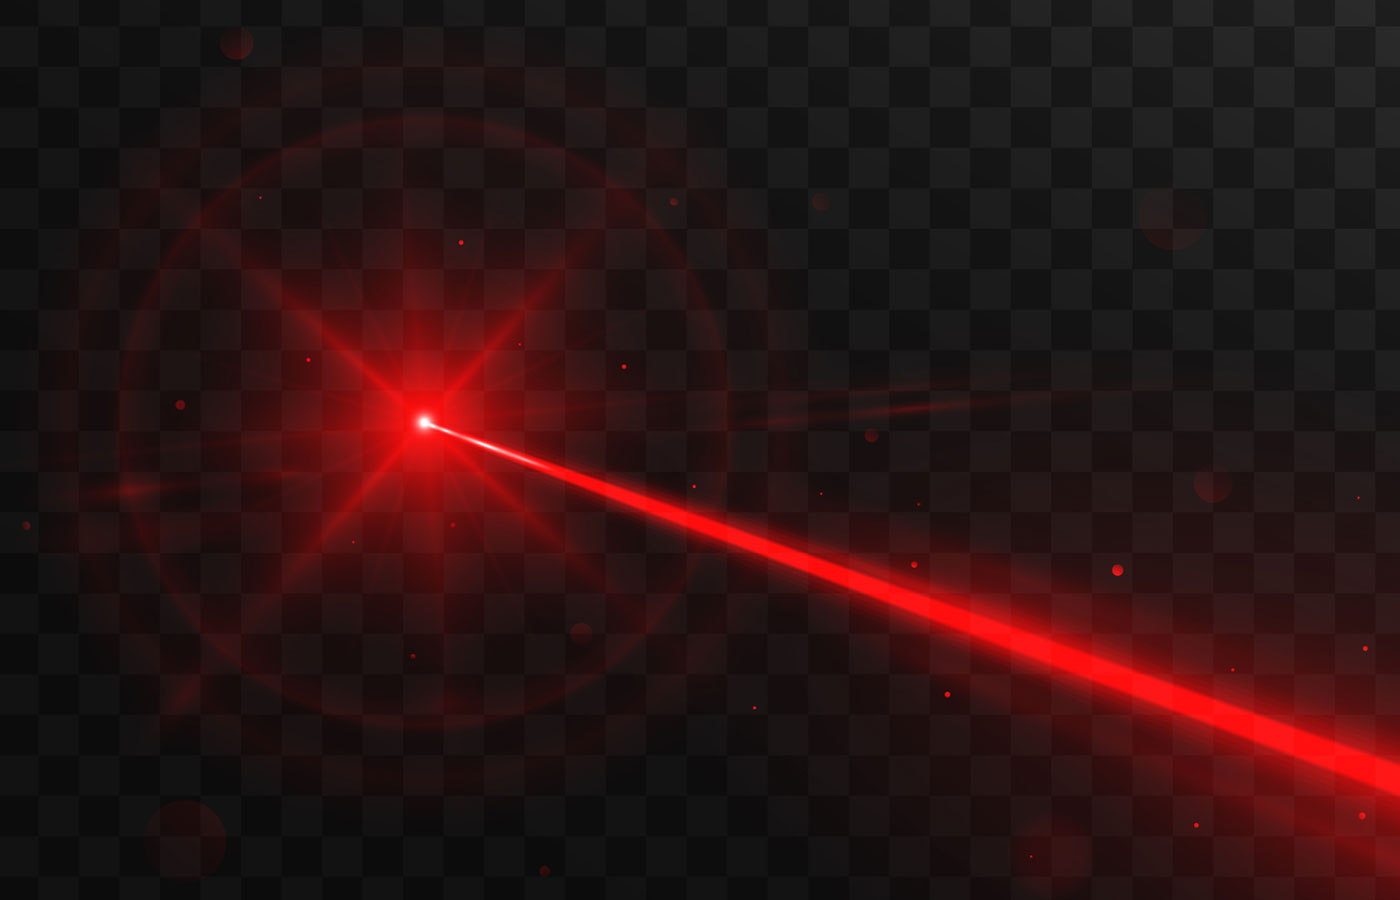 Abstract red laser beam. Isolated on transparent black background